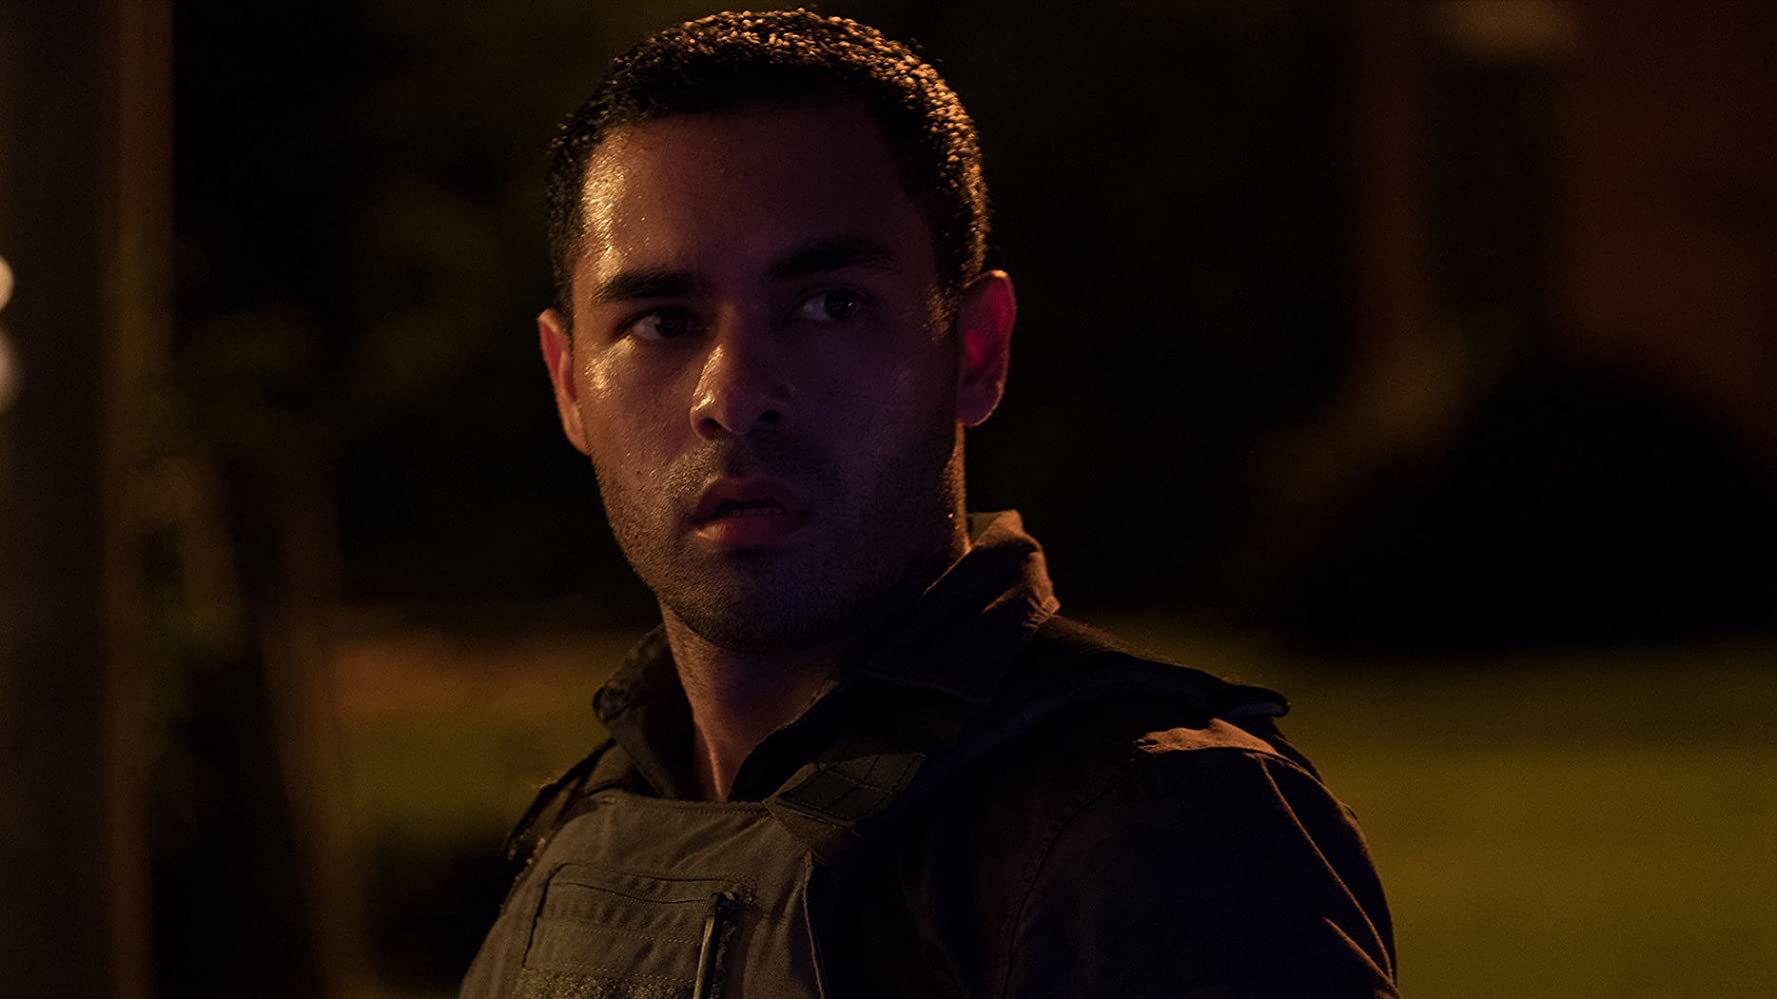 Gabriel Chavarria in The Purge (2018)